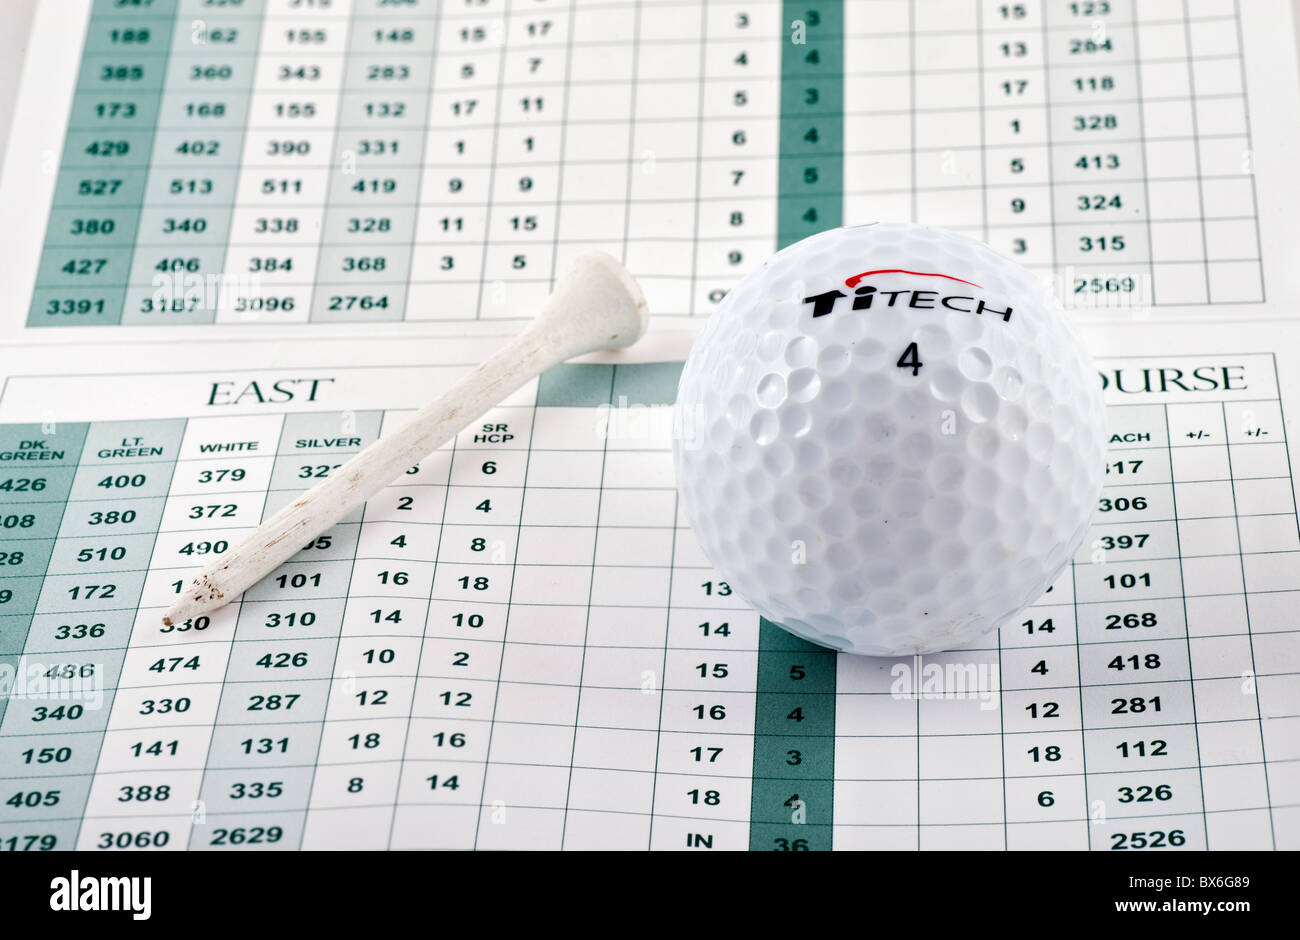 Golf Ball, Tee and Score Card, Florida, USA - Stock Image